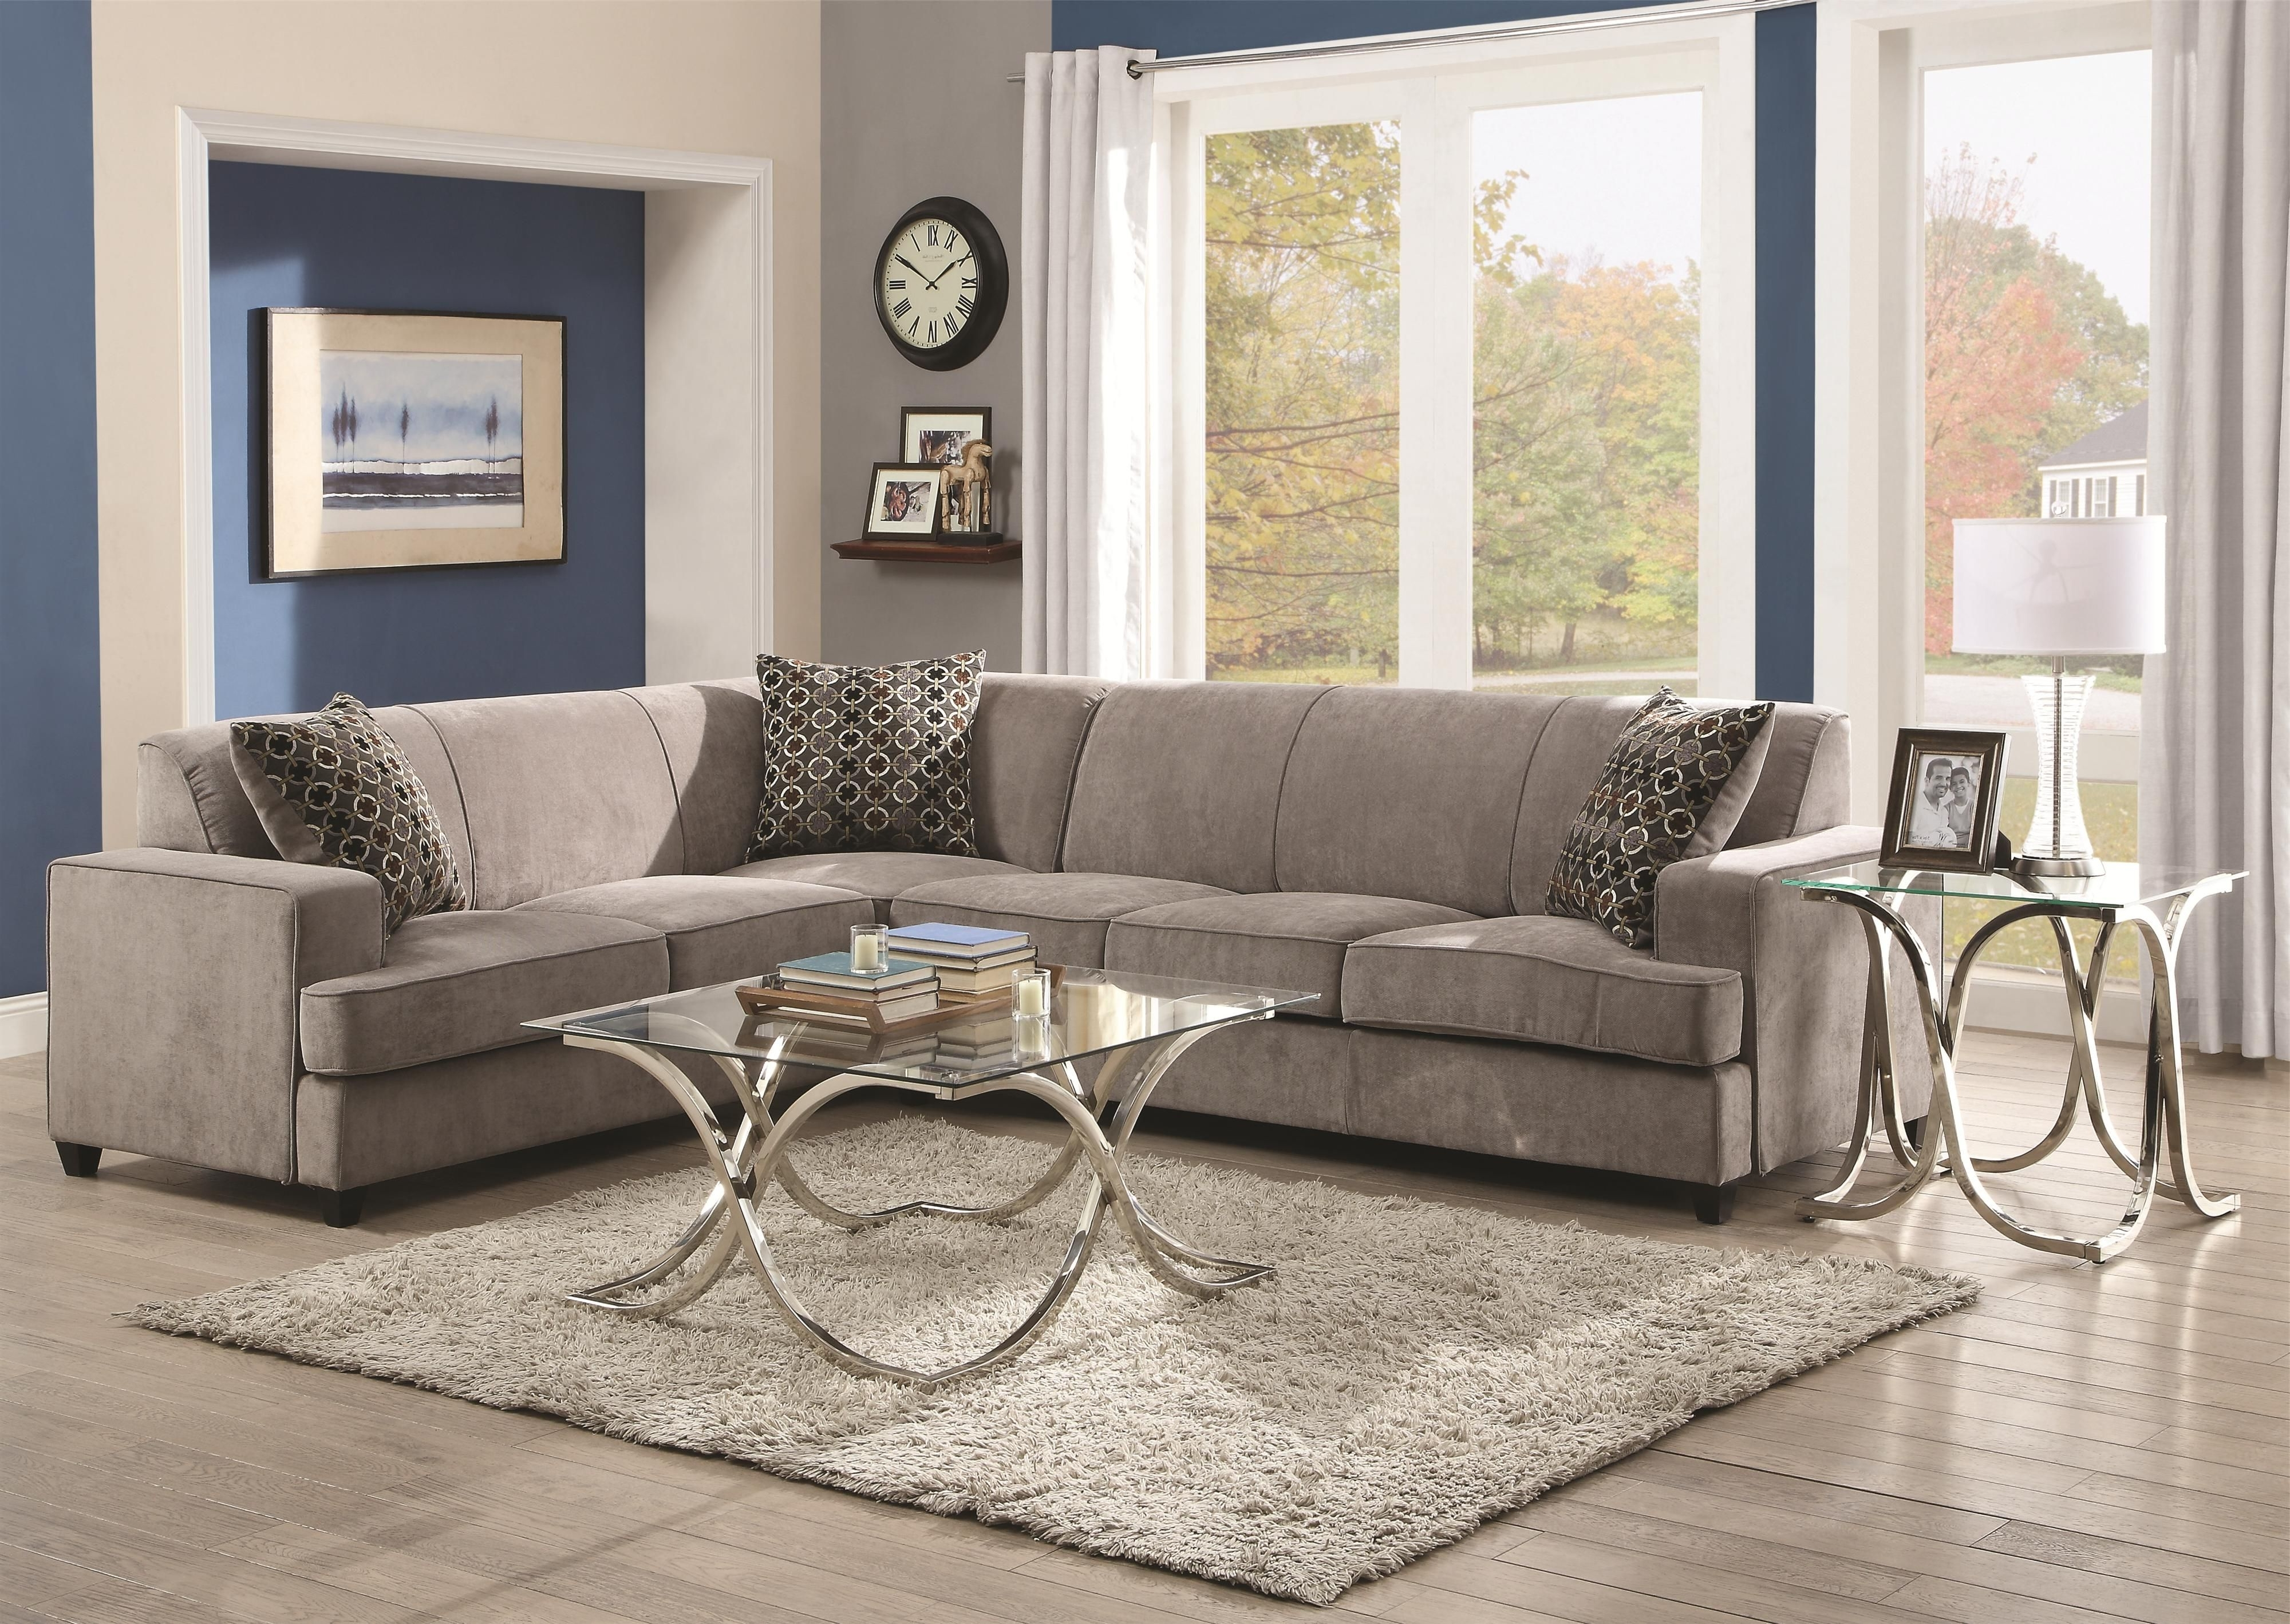 Elk Grove Ca Sectional Sofas Within Best And Newest Tess Sectional Sofa For Cornerscoaster (View 9 of 20)